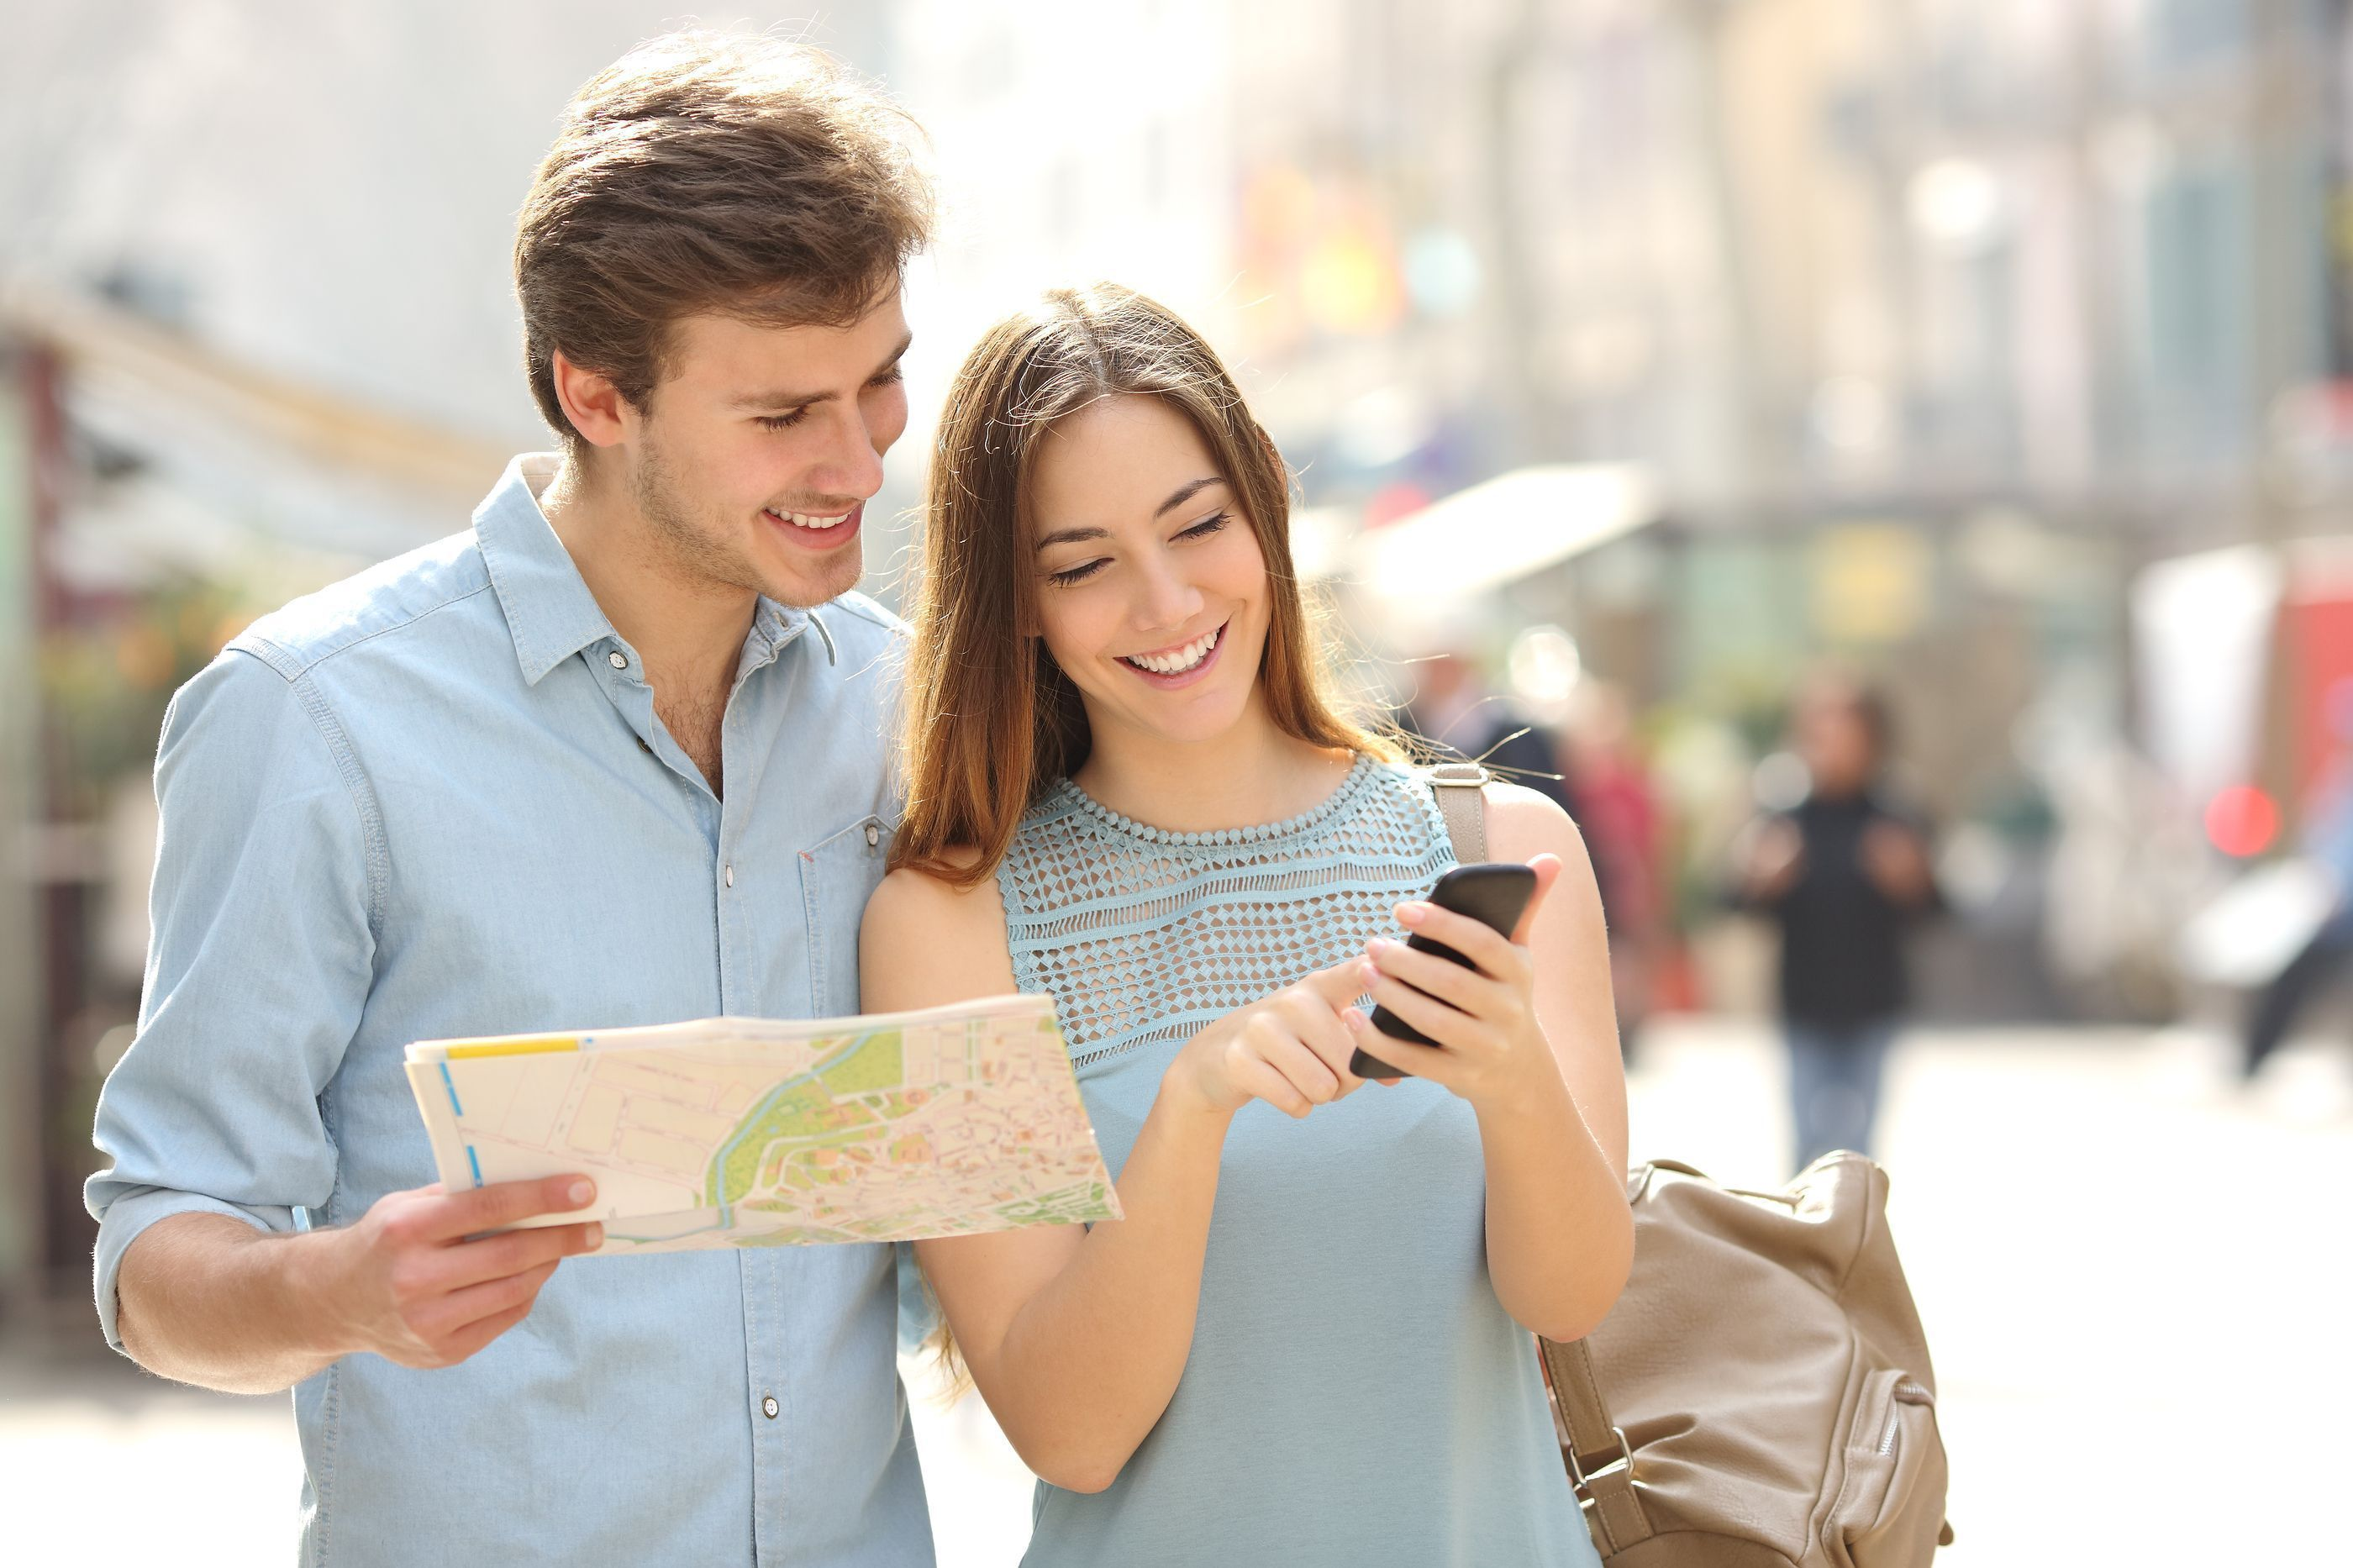 bigstock-Couple-Of-Tourists-Consulting-85806185.jpg